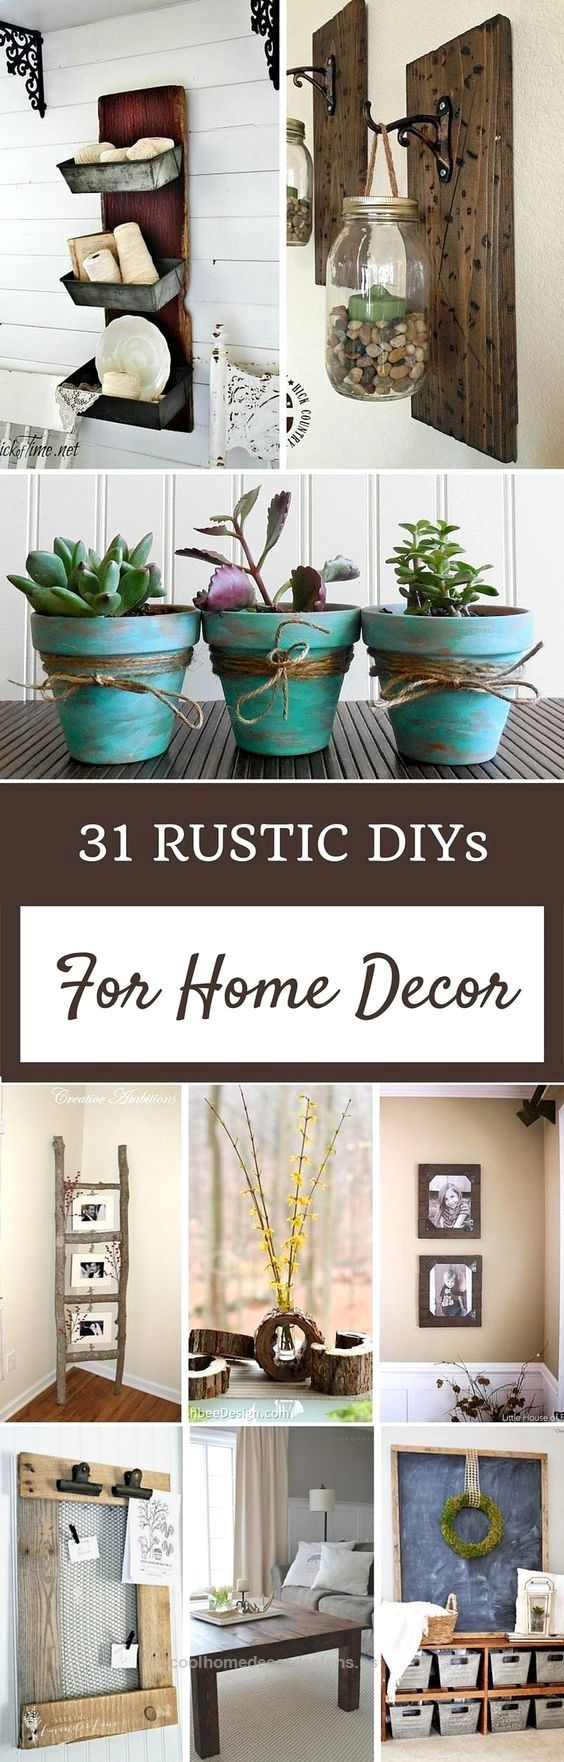 31 Rustic DIYs For Home Decor                                                   …  31 Rustic DIYs For Home Decor                                                                                         (Tech Projects House)